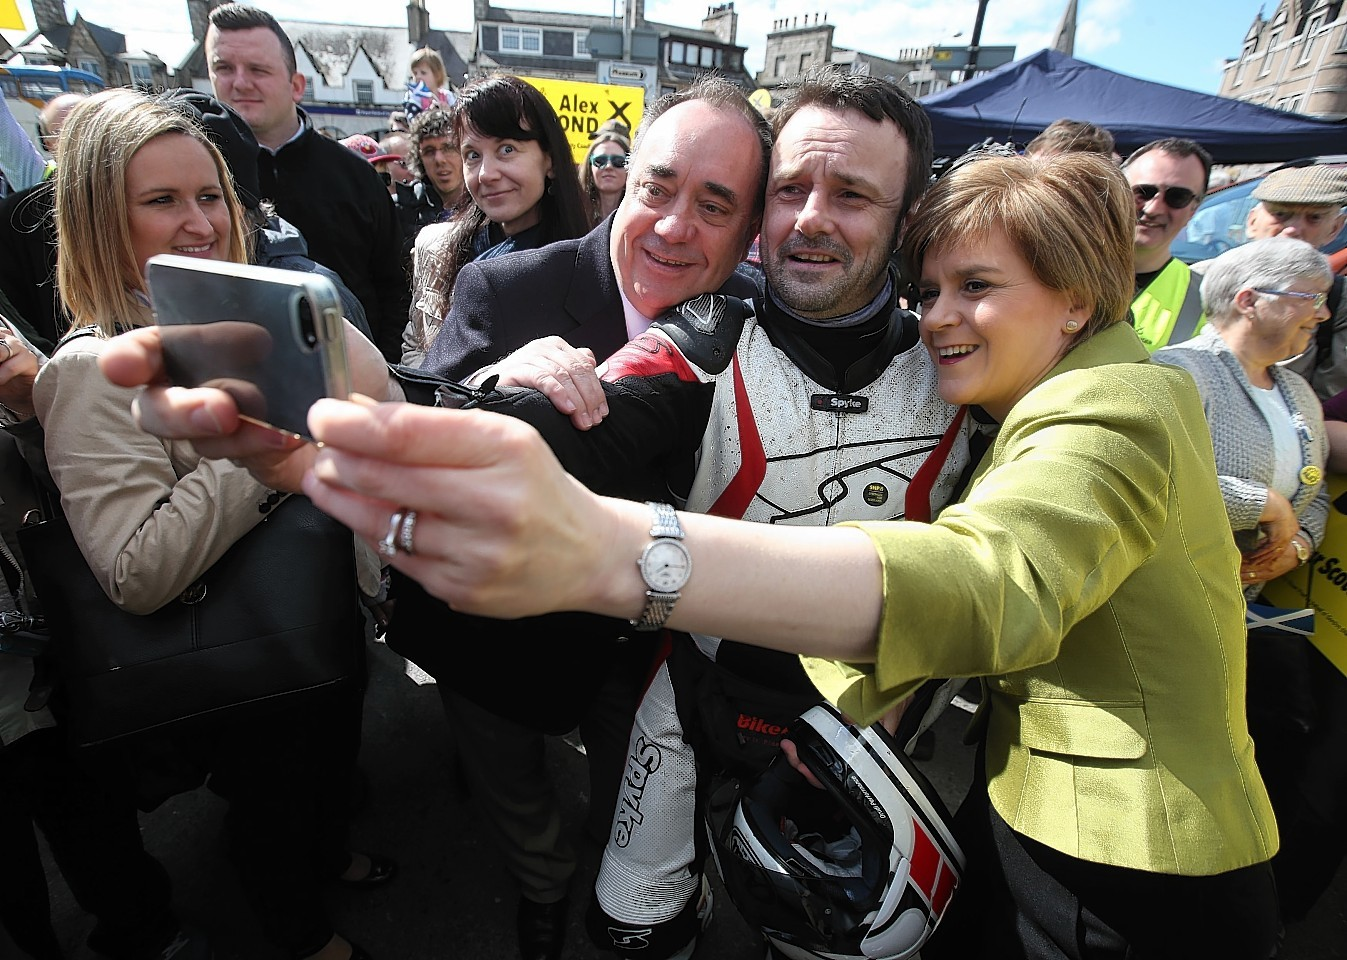 First Minister Nicola Sturgeon and Alex Salmond meet supporters while on the General Election campaign trail in Inverurie